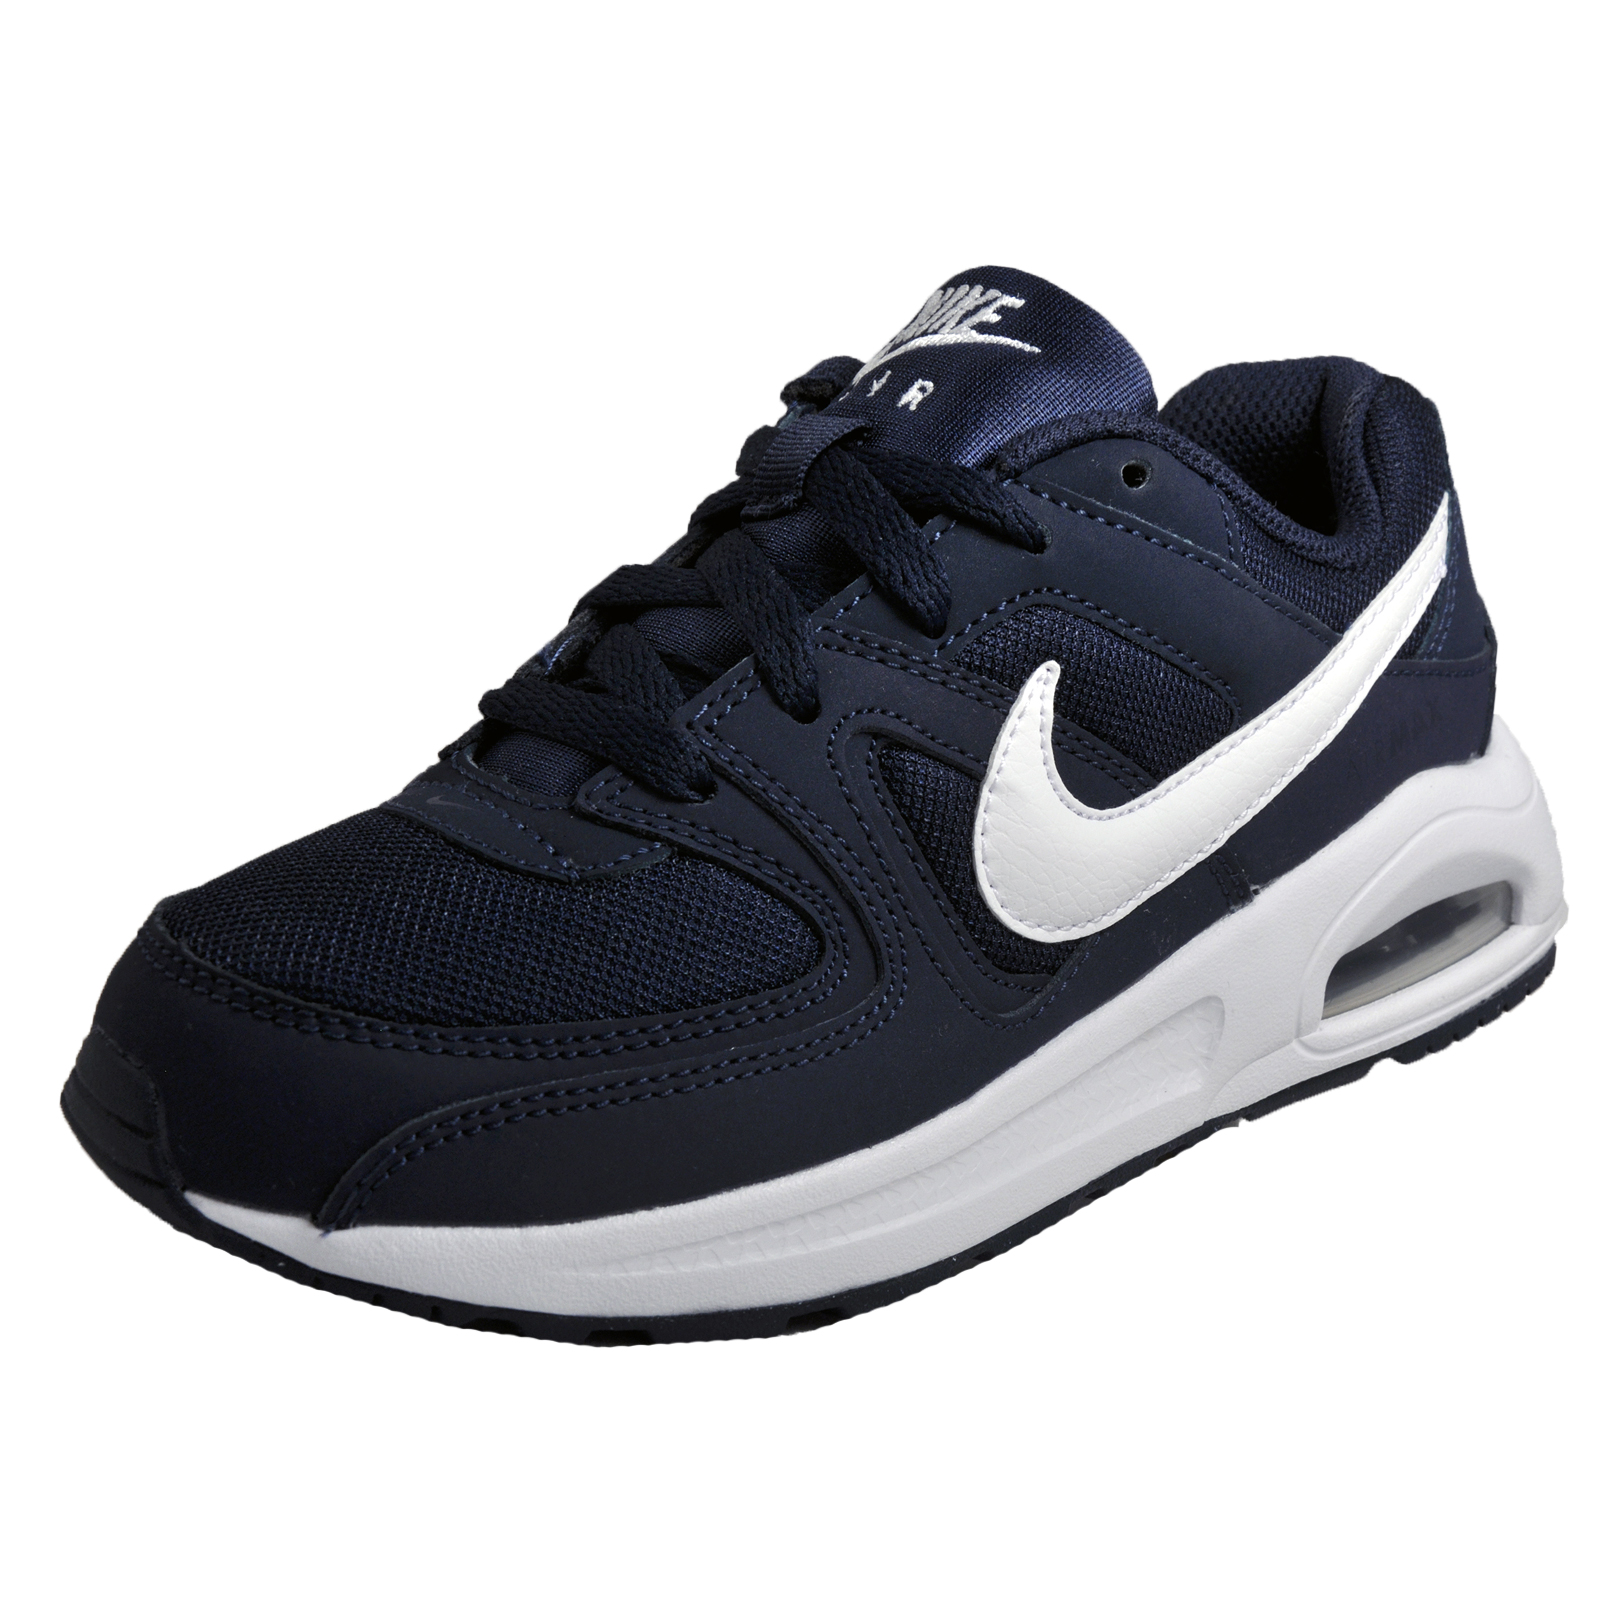 ff1dbf35df Details about Nike Air Max Command Flex Junior Kids Classic Casual Retro  Trainers Navy